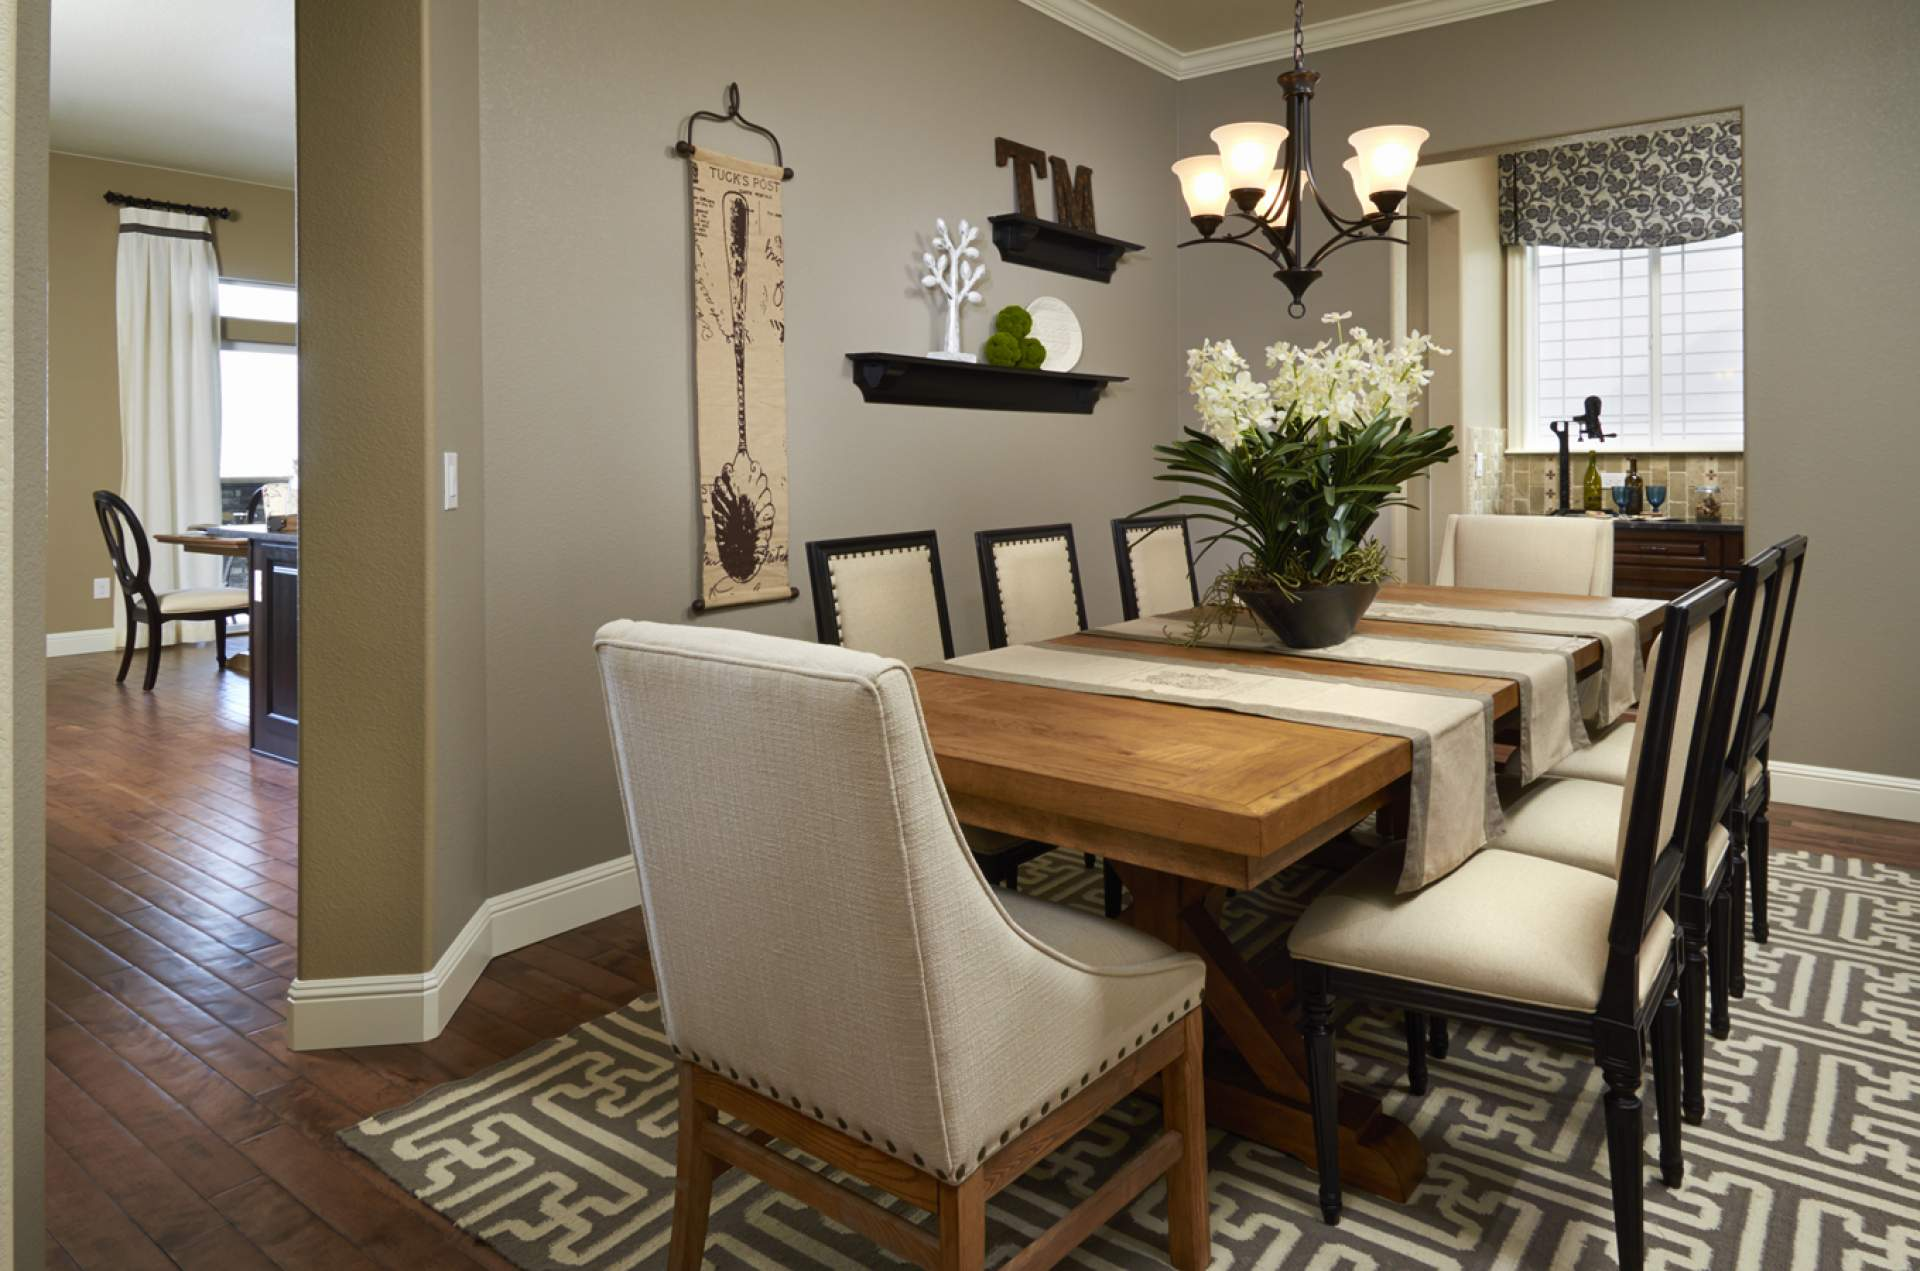 Formal dining room ideas how to choose the best wall for Dining room table and chairs ideas